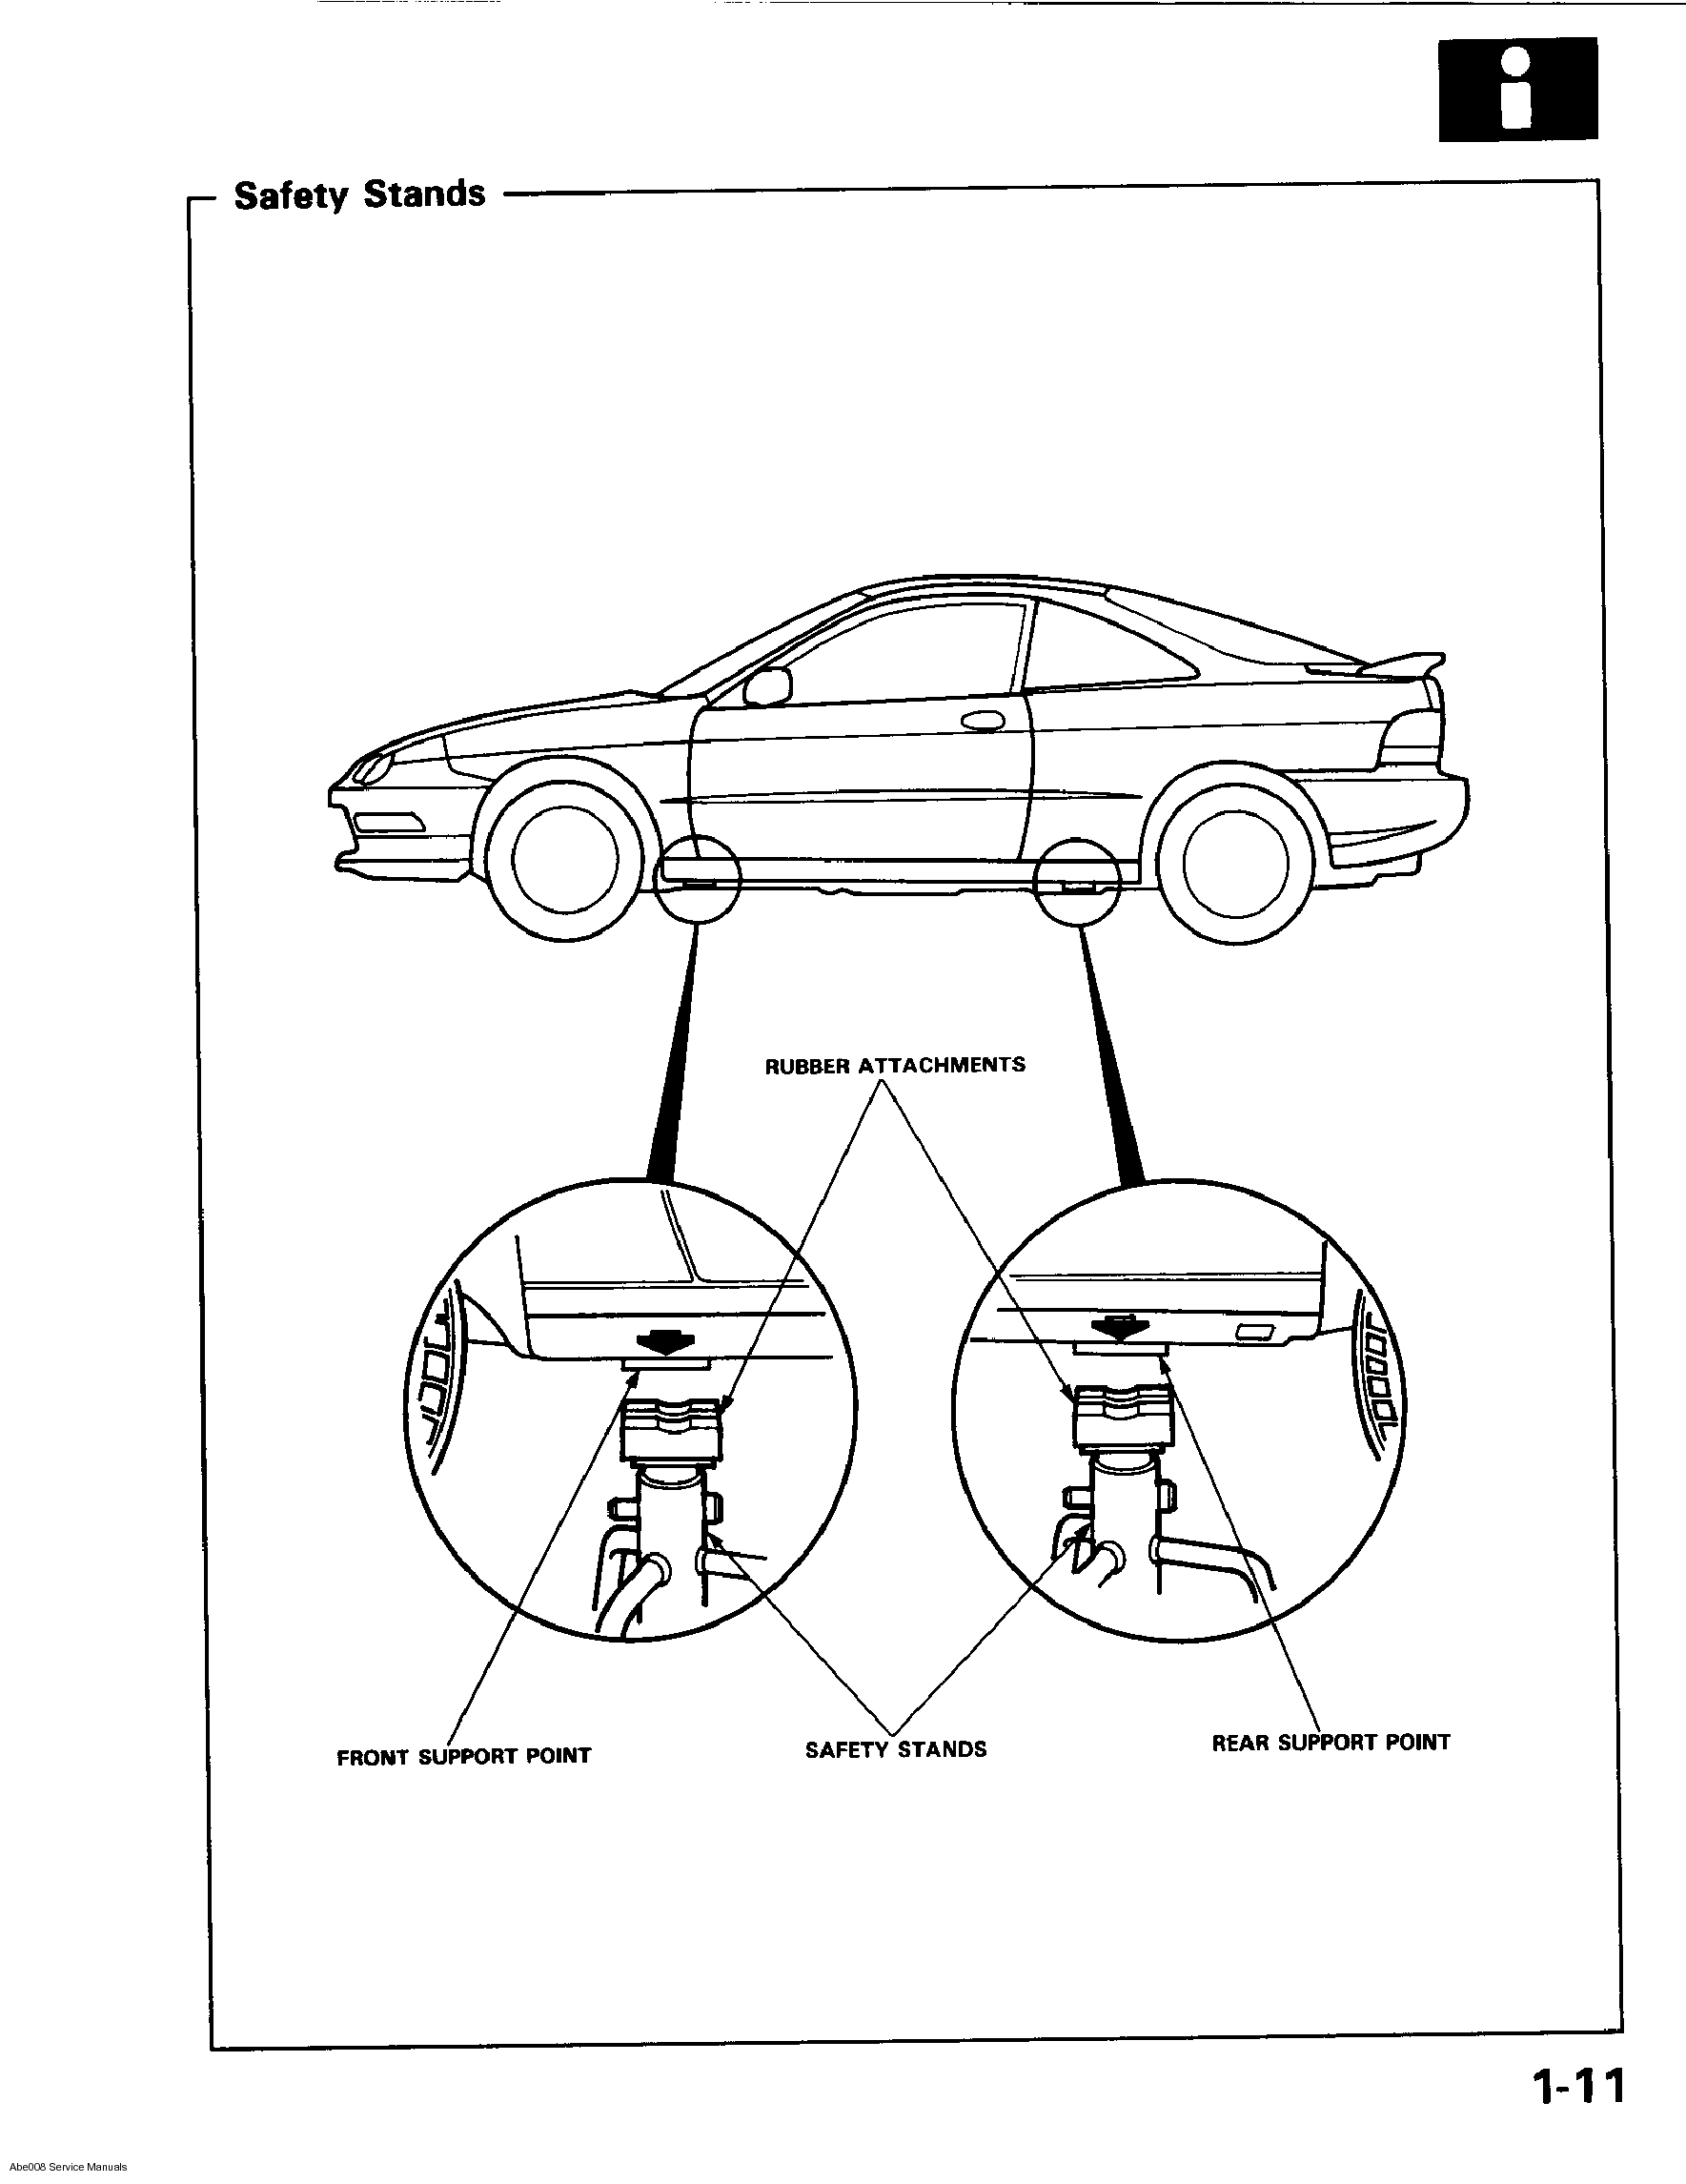 chevrolet astro 1996 manual pdf download